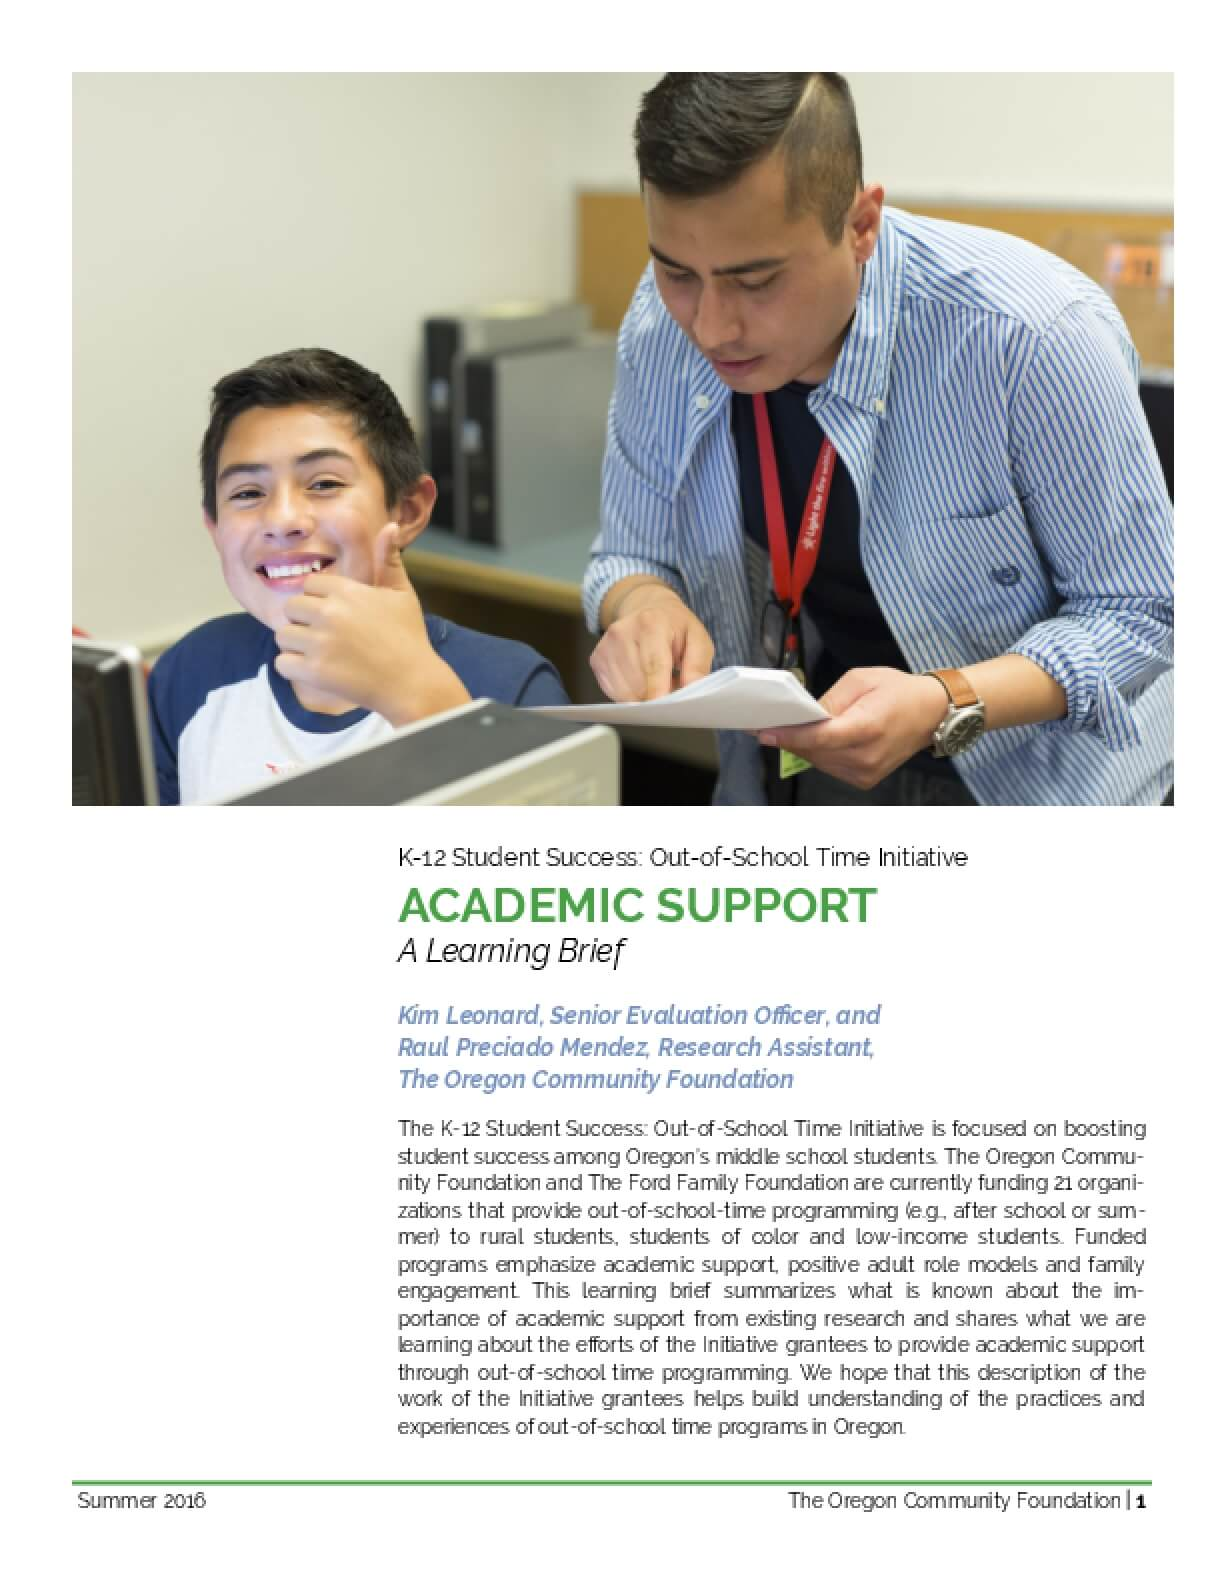 Academic Support, A Learning Brief